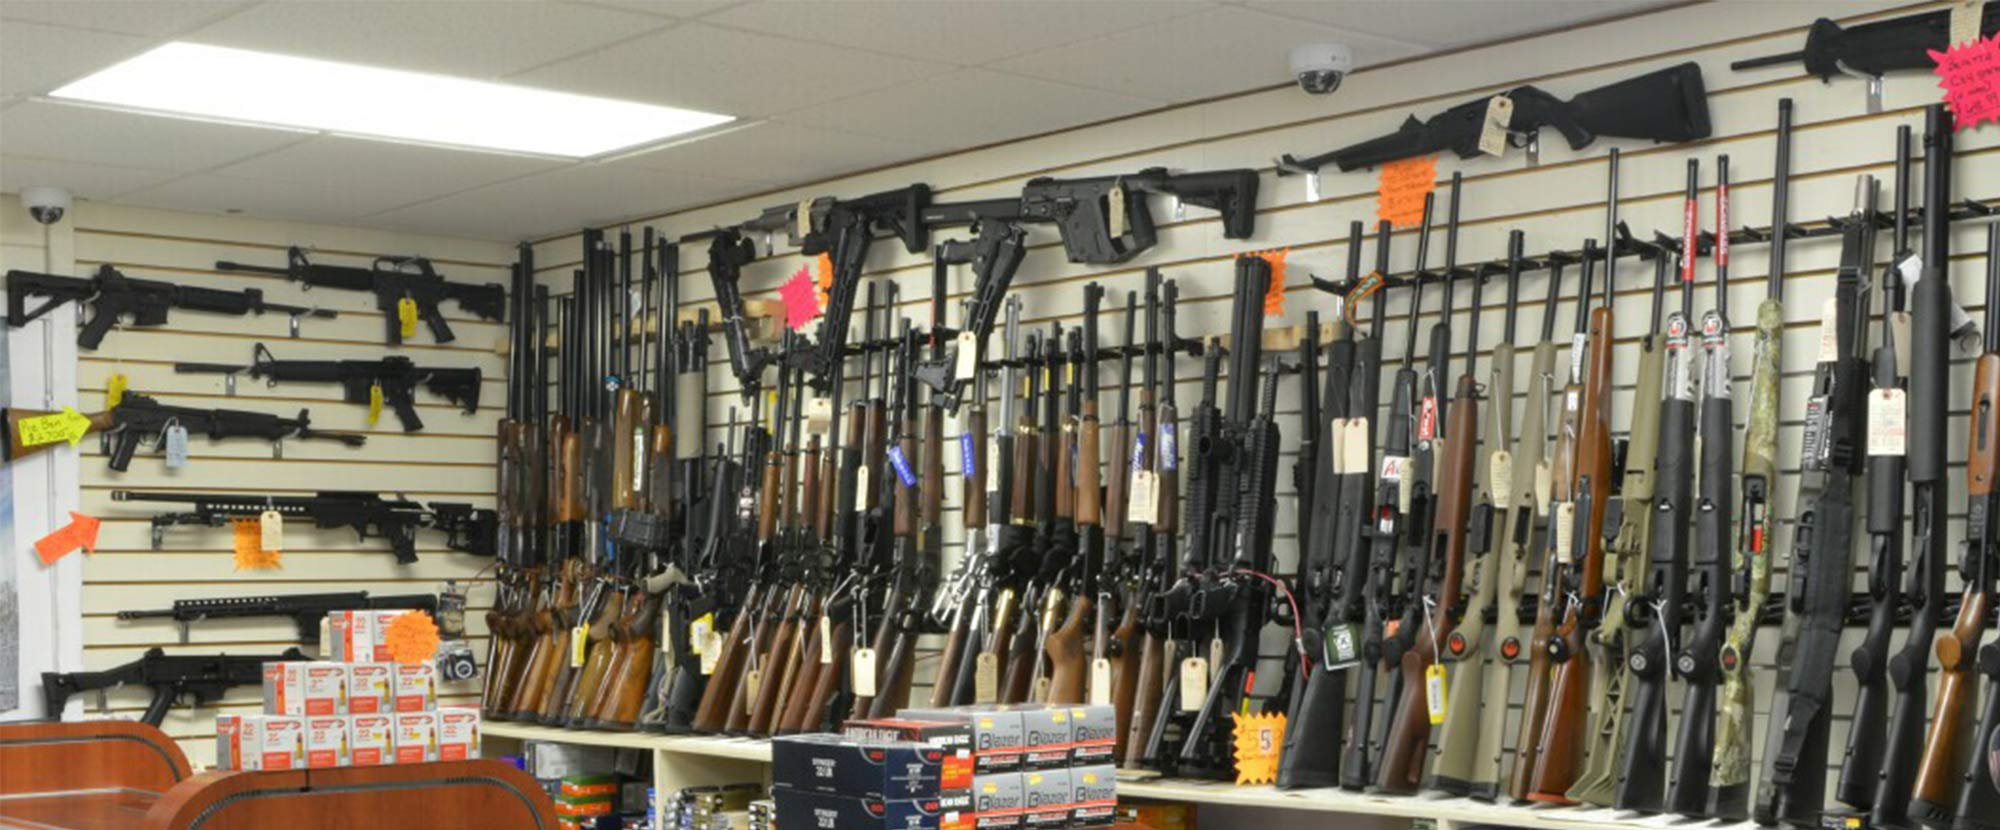 Check out our Great Selection of Used Guns.